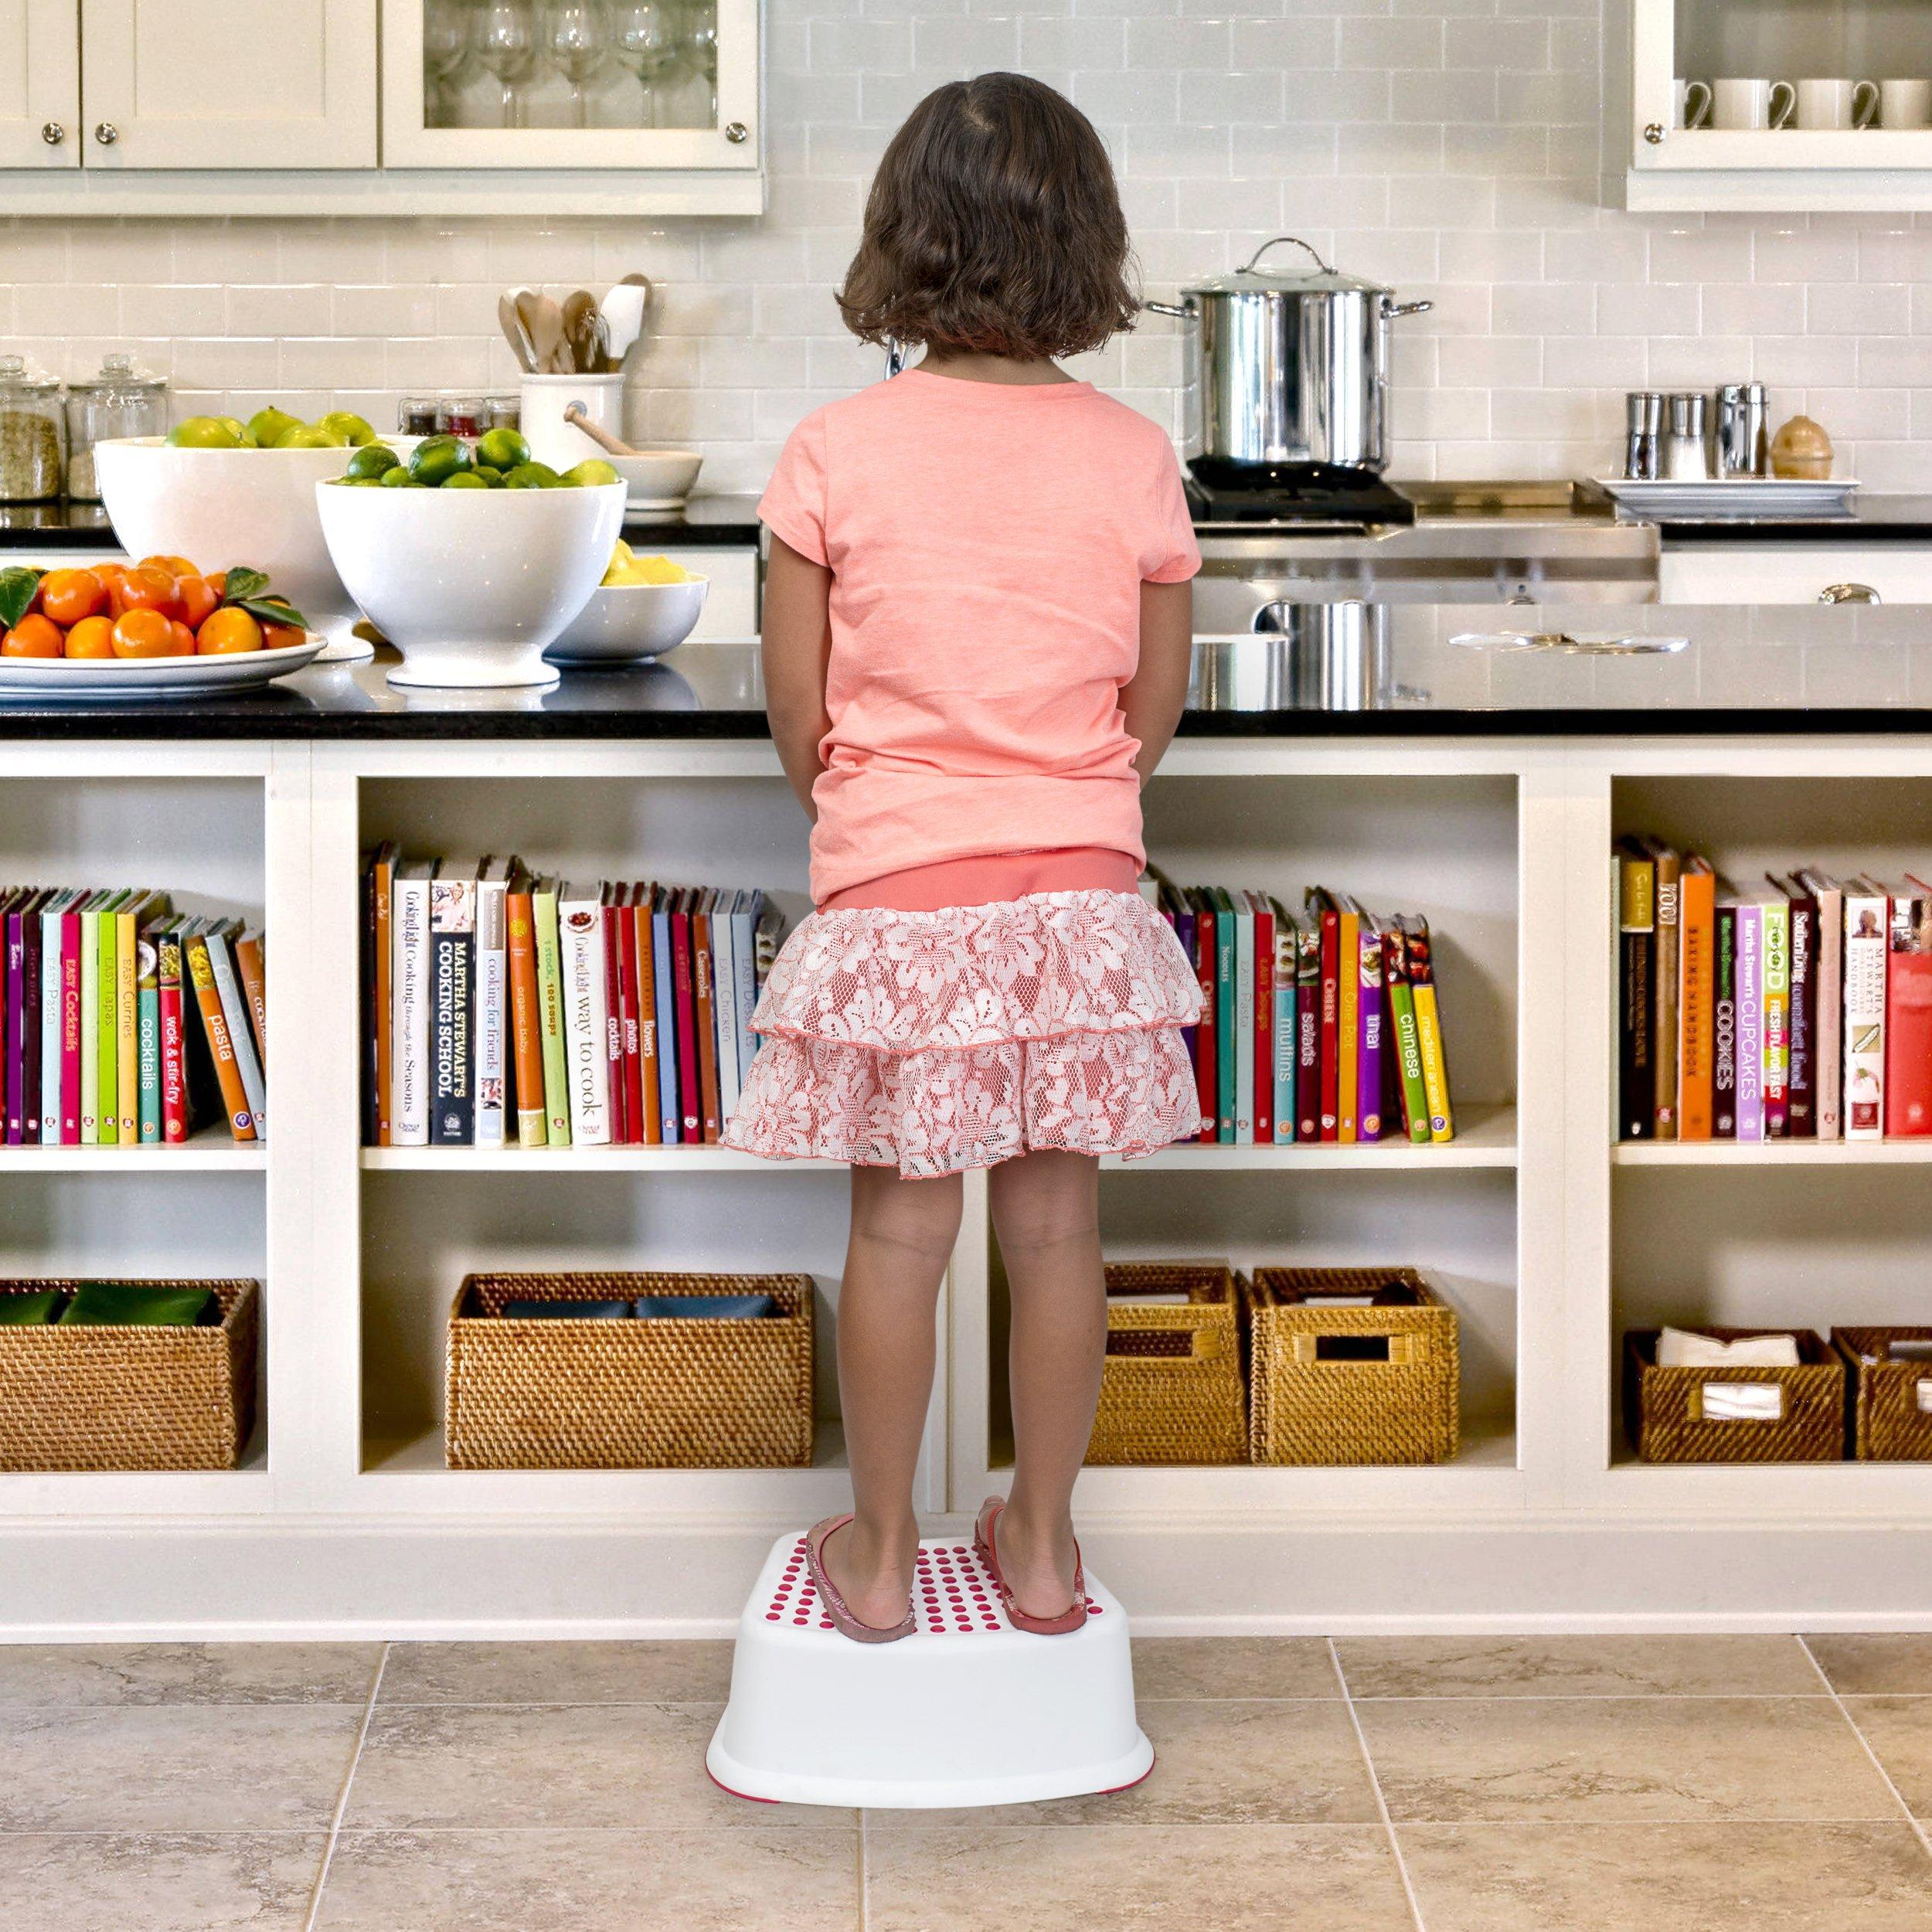 Red Step Stool For Kids Great For Potty Training